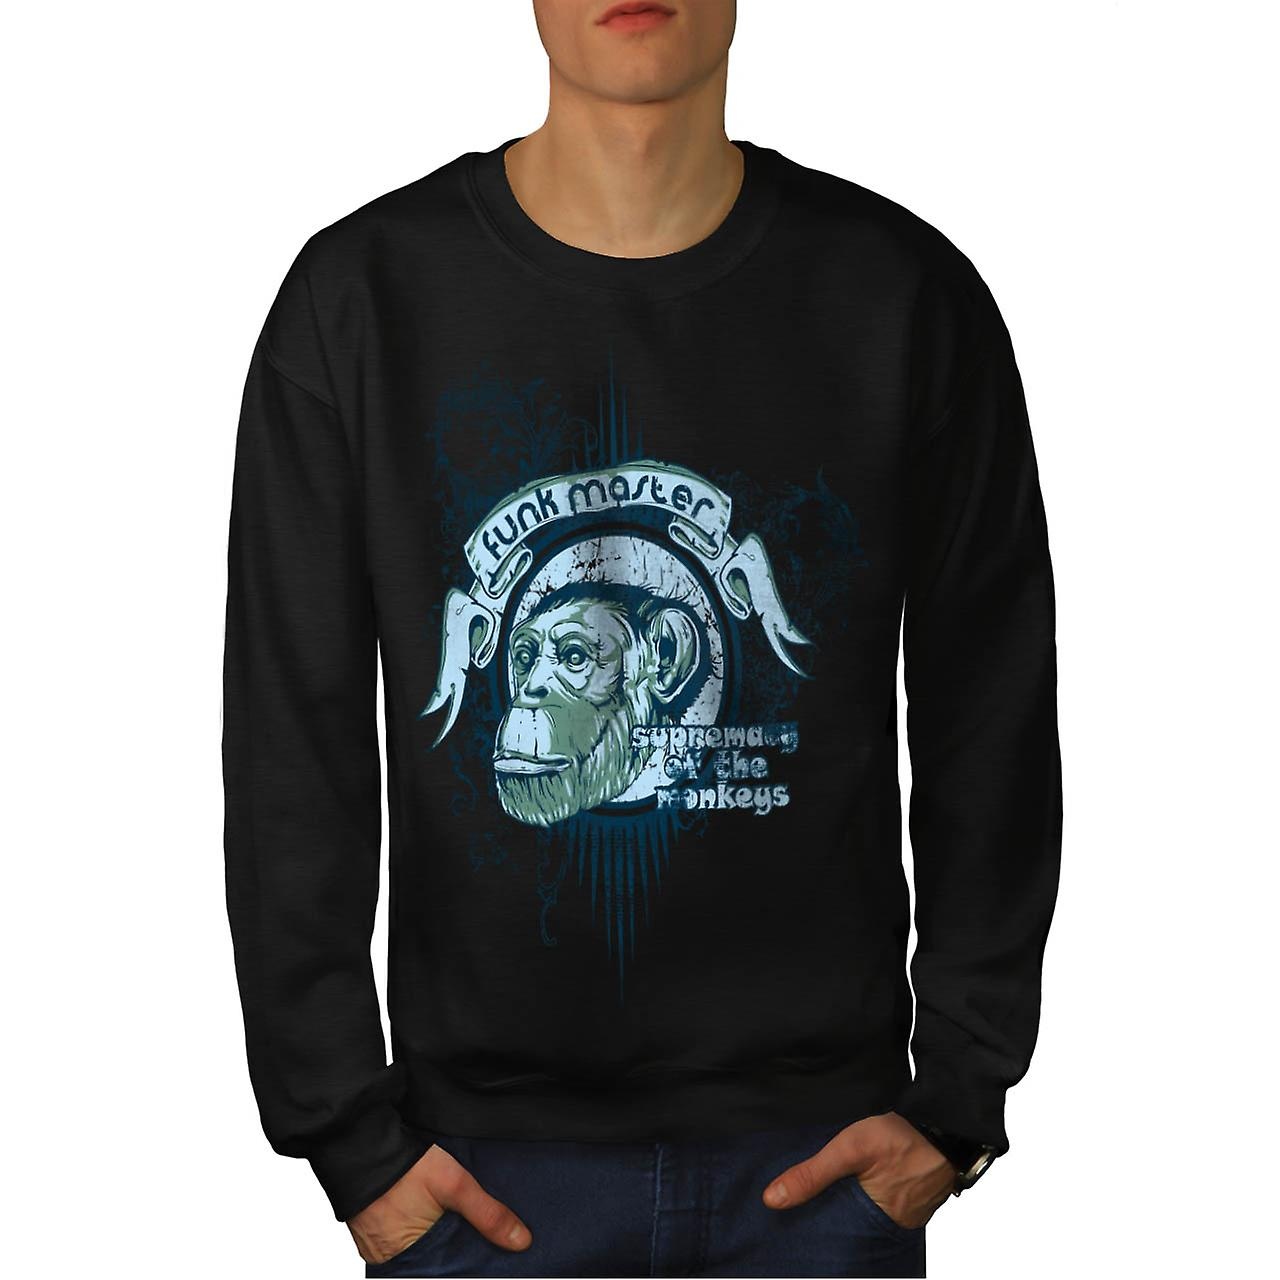 Funk Master Monkey Supreme Ape Men Black Sweatshirt | Wellcoda